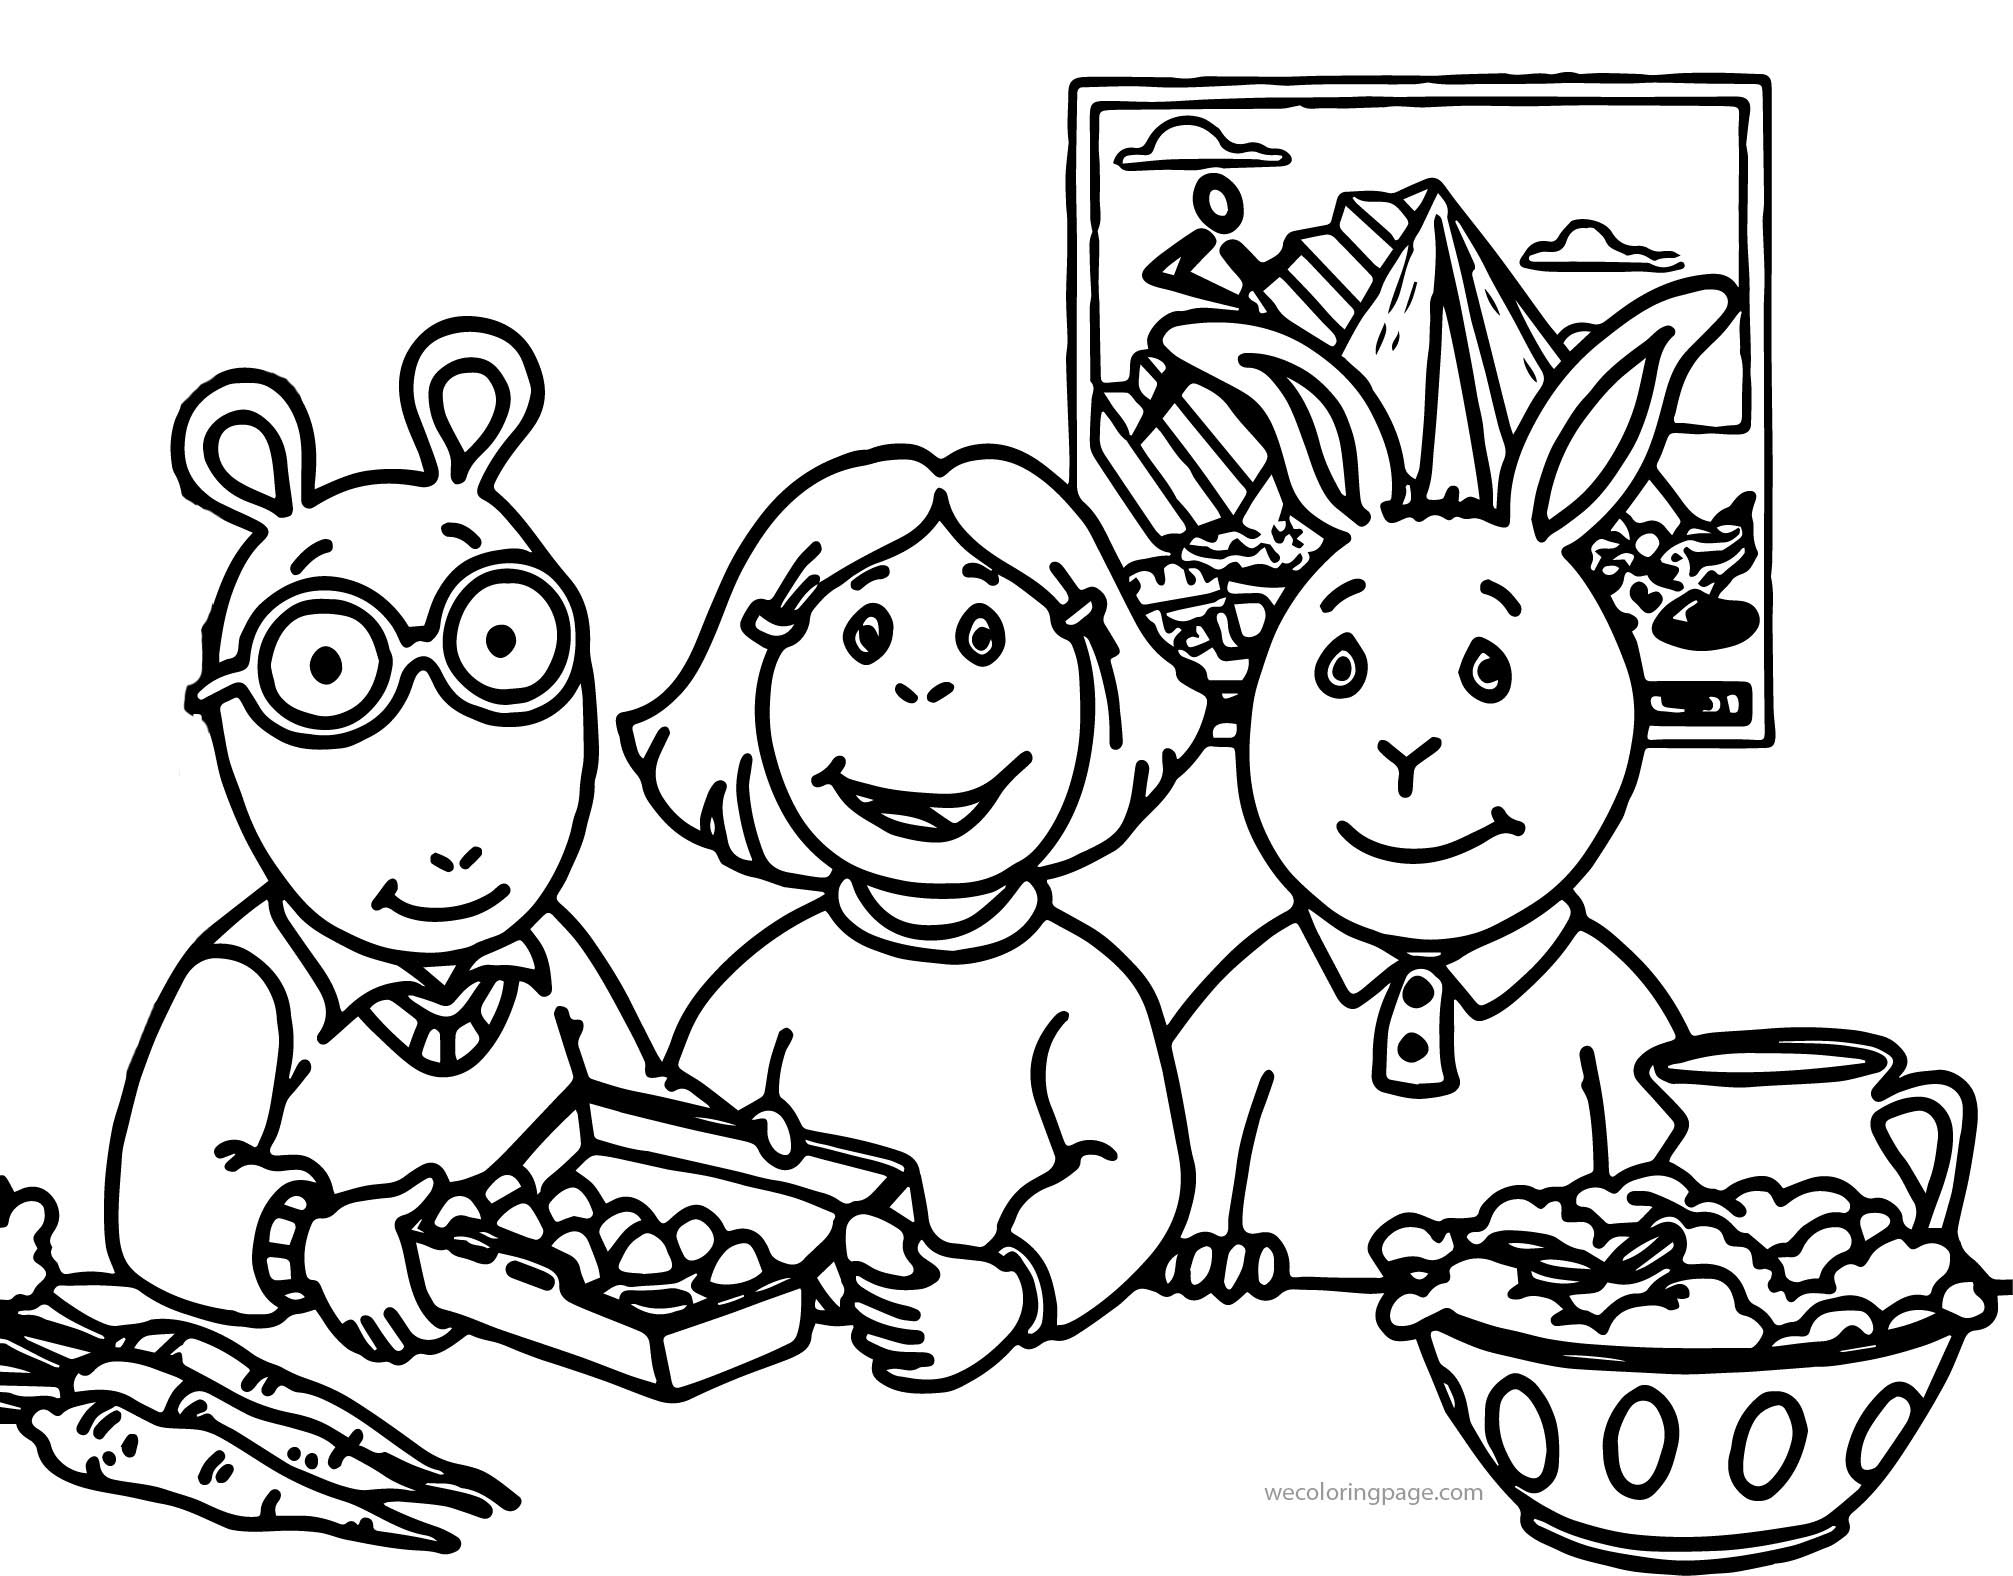 Arthur pbs kids coloring page for Pbskids coloring pages